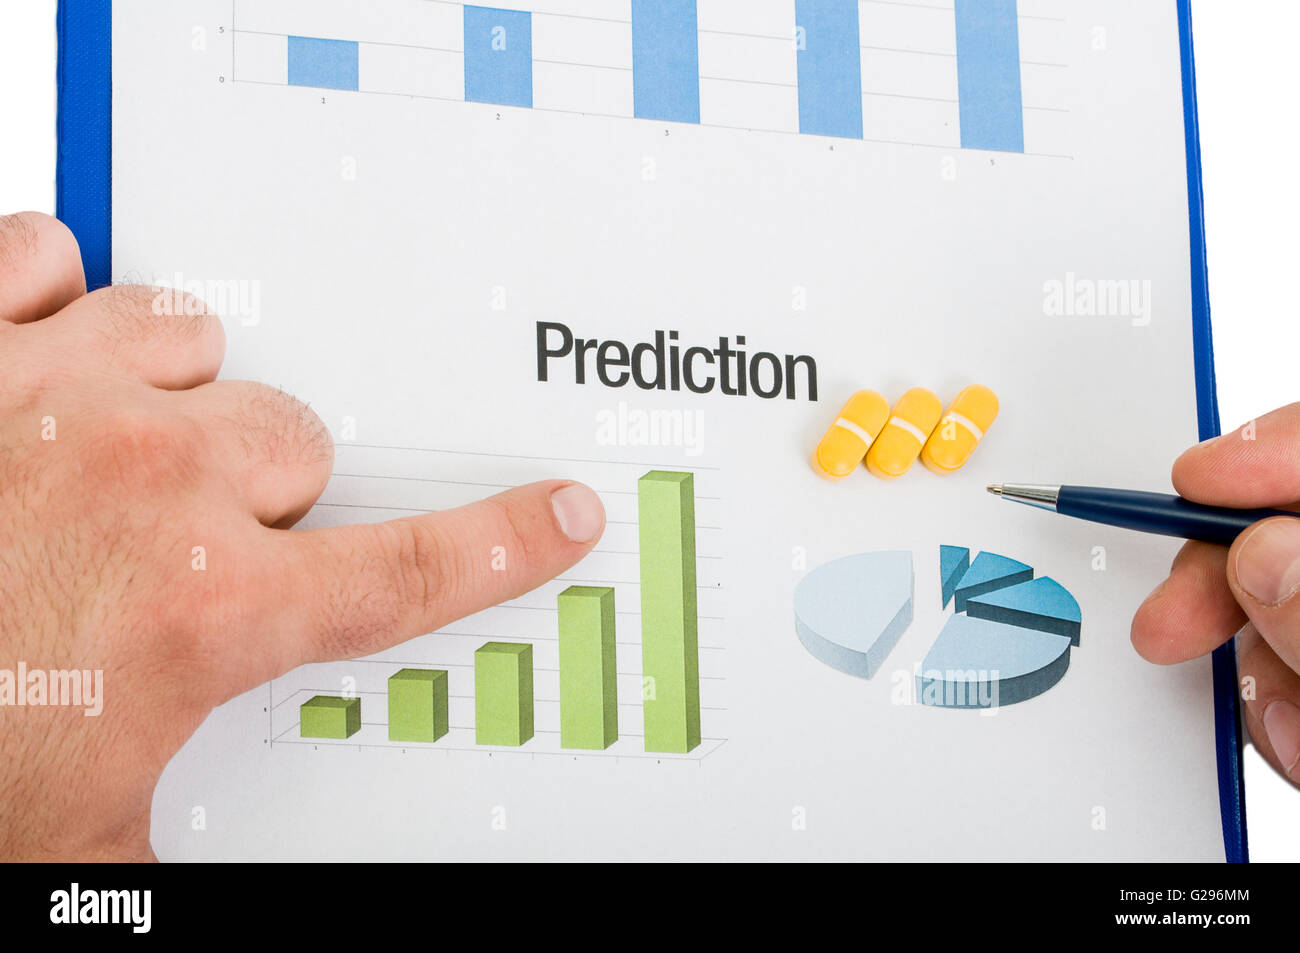 Prediction for vitamin sales on global marketing results. - Stock Image